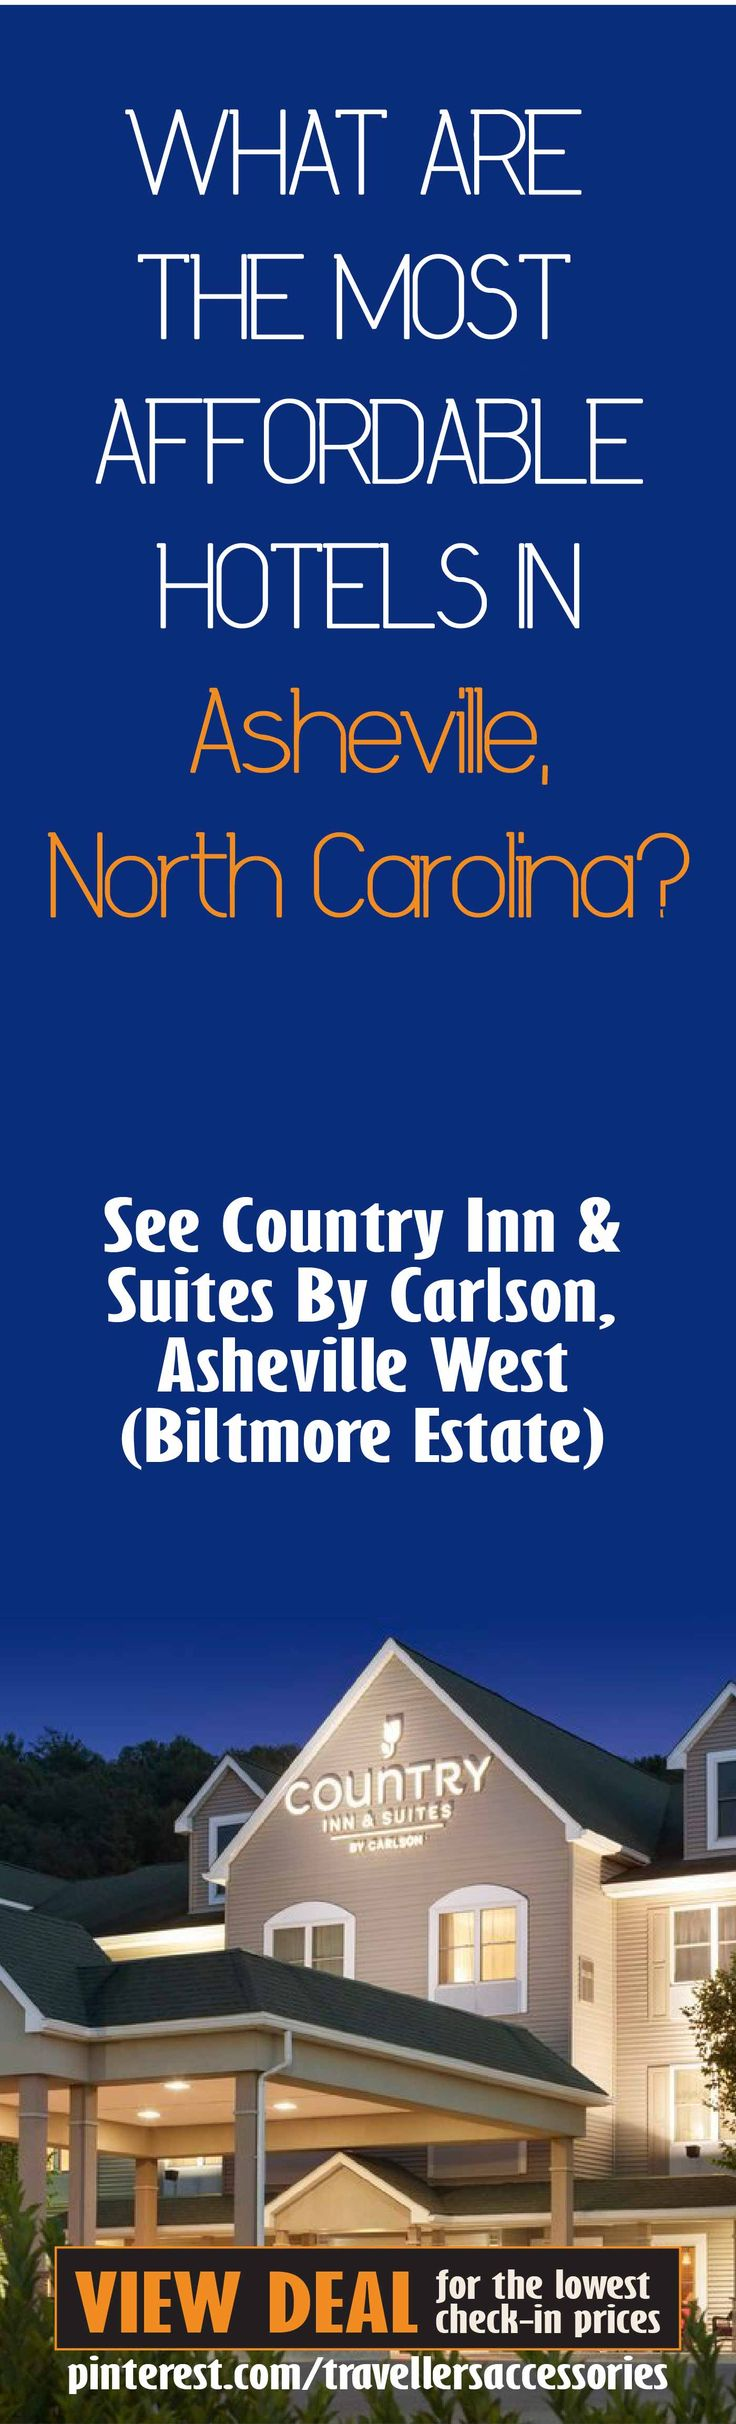 Discounted, Great value luxury hotels in Asheville, North Carolina, Country Inn & Suites By Carlson, #Asheville West (Biltmore Estate)  #hialeah #littlehavana #southmiamidade #midtown #midtownmiami #wynwood #wynwoodmiami #wynwoodmoms #miamimoms #fayettevillear #nyc #vscoonly #vscogram #igersnc #asheville #northcarolina